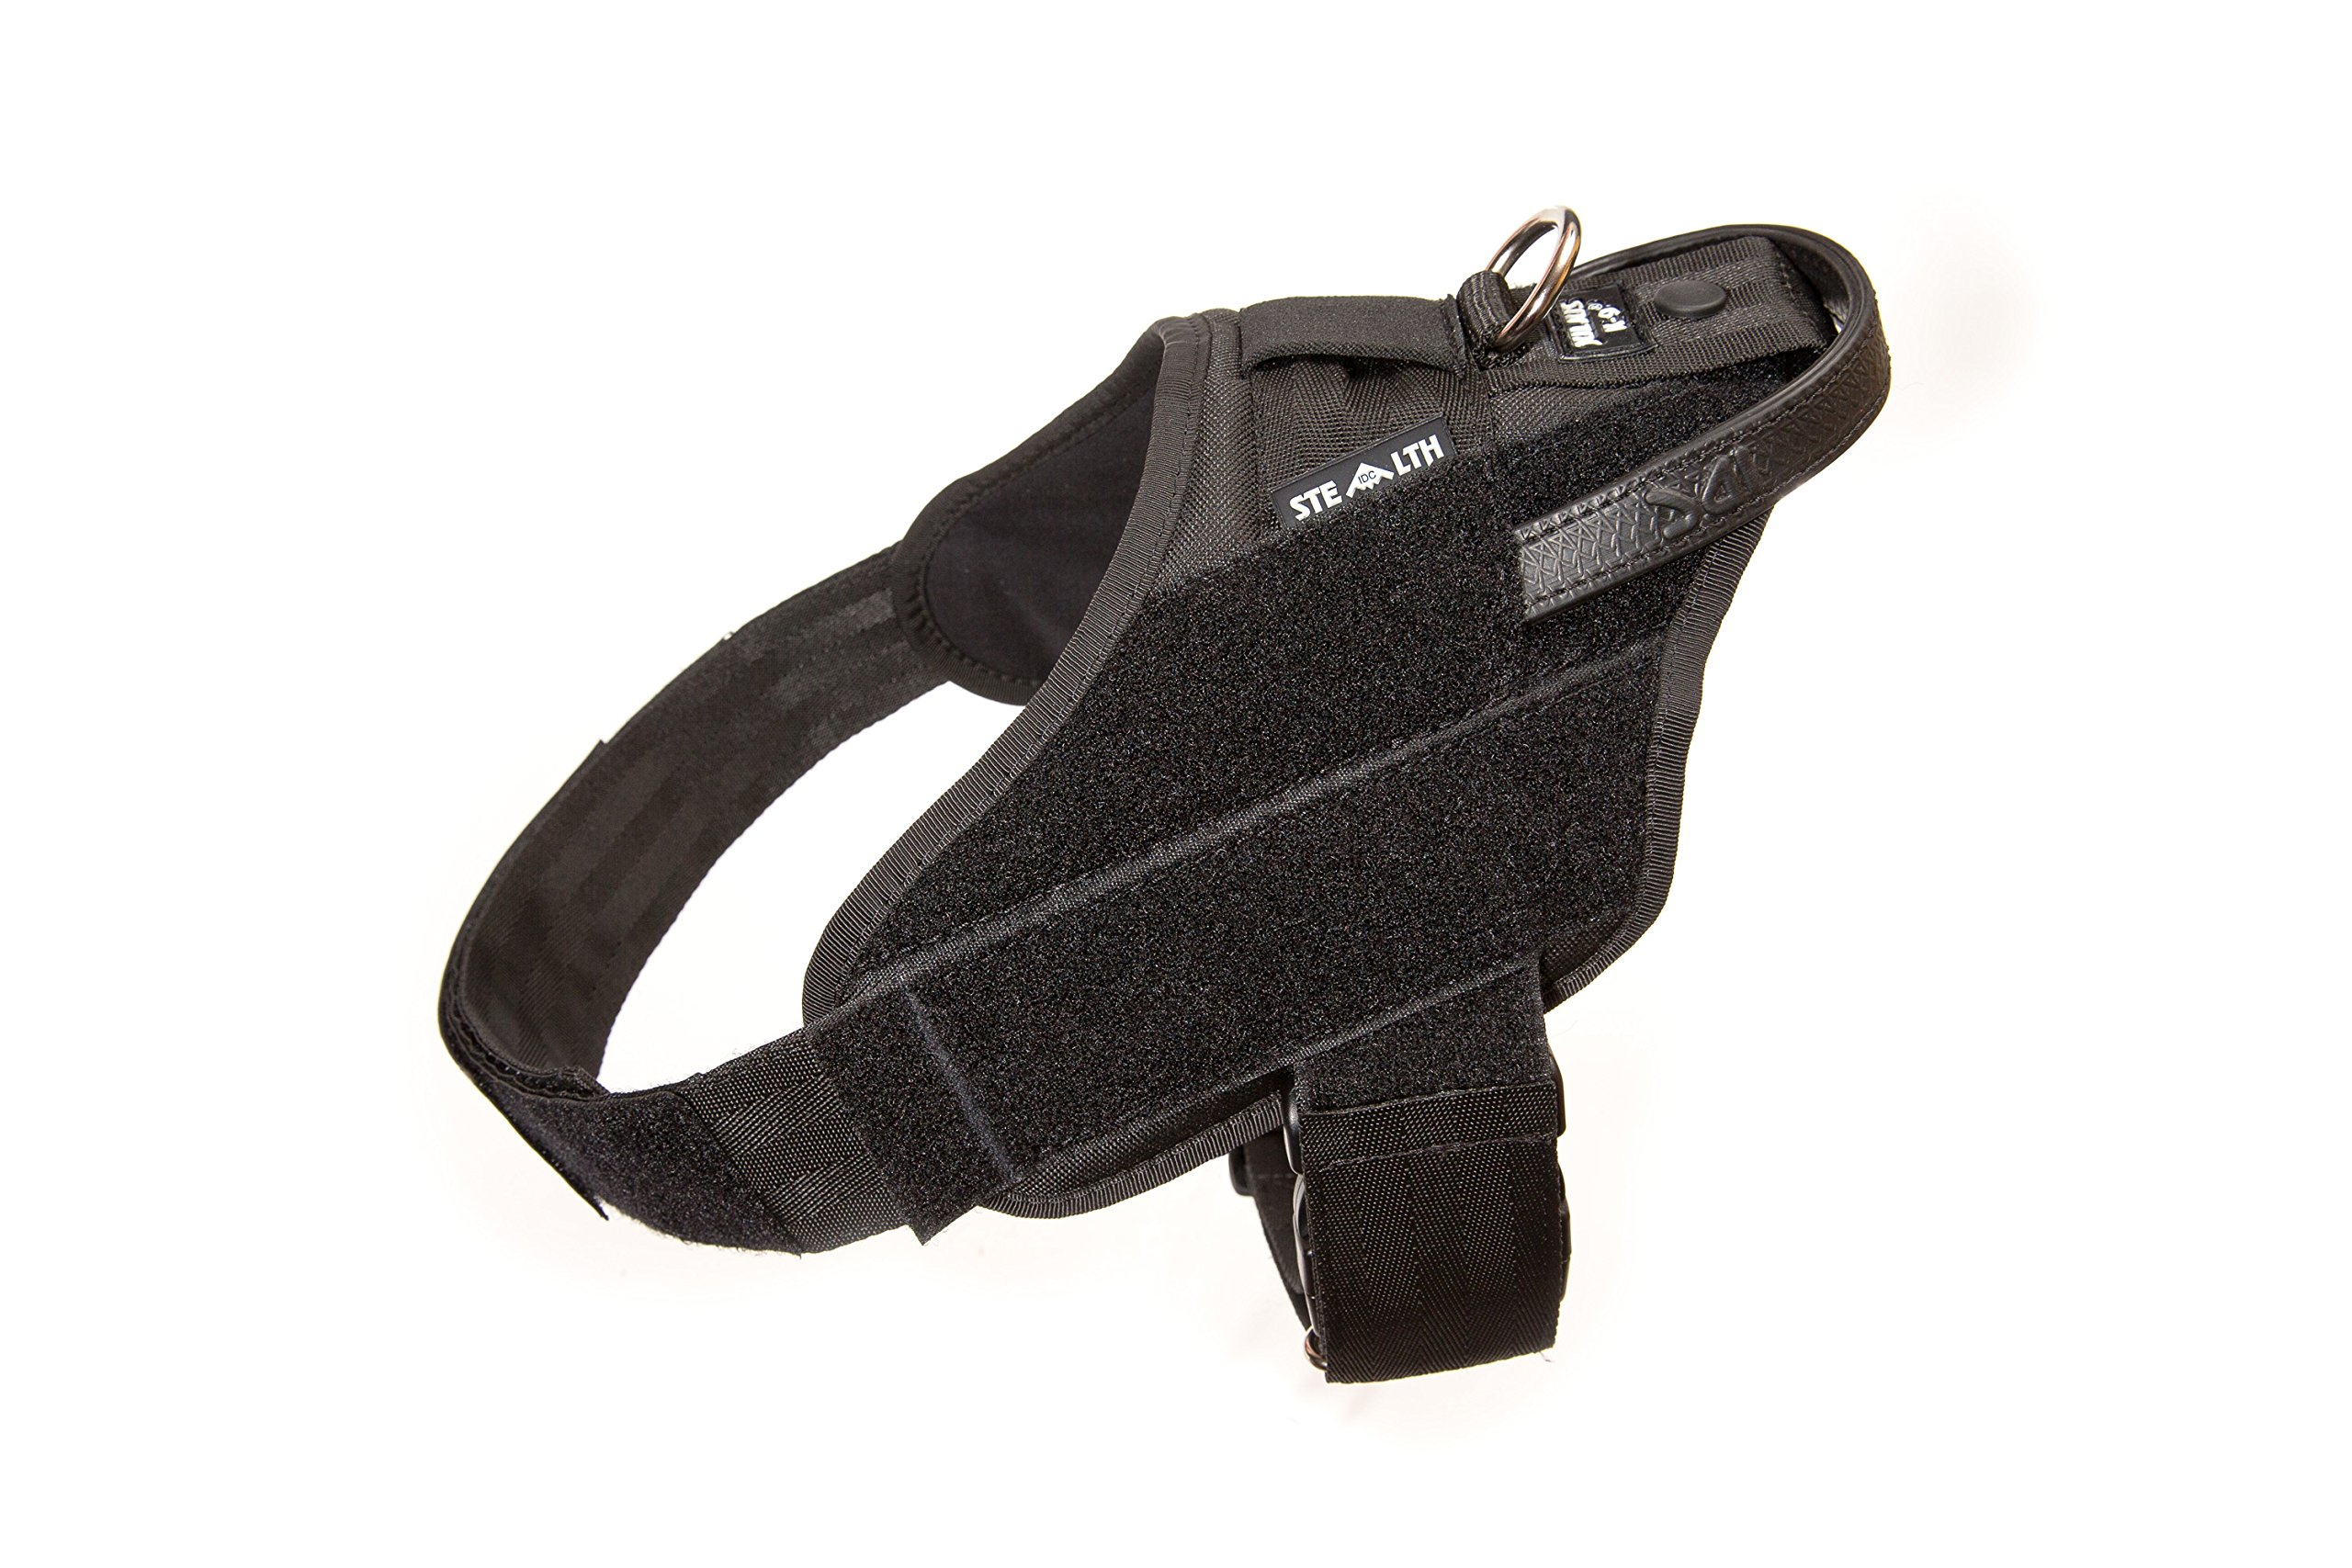 Julius-K9 16STEALTH-P-2 IDC Stealth Powerharness for Dogs, Size: 2, Black by Julius-K9